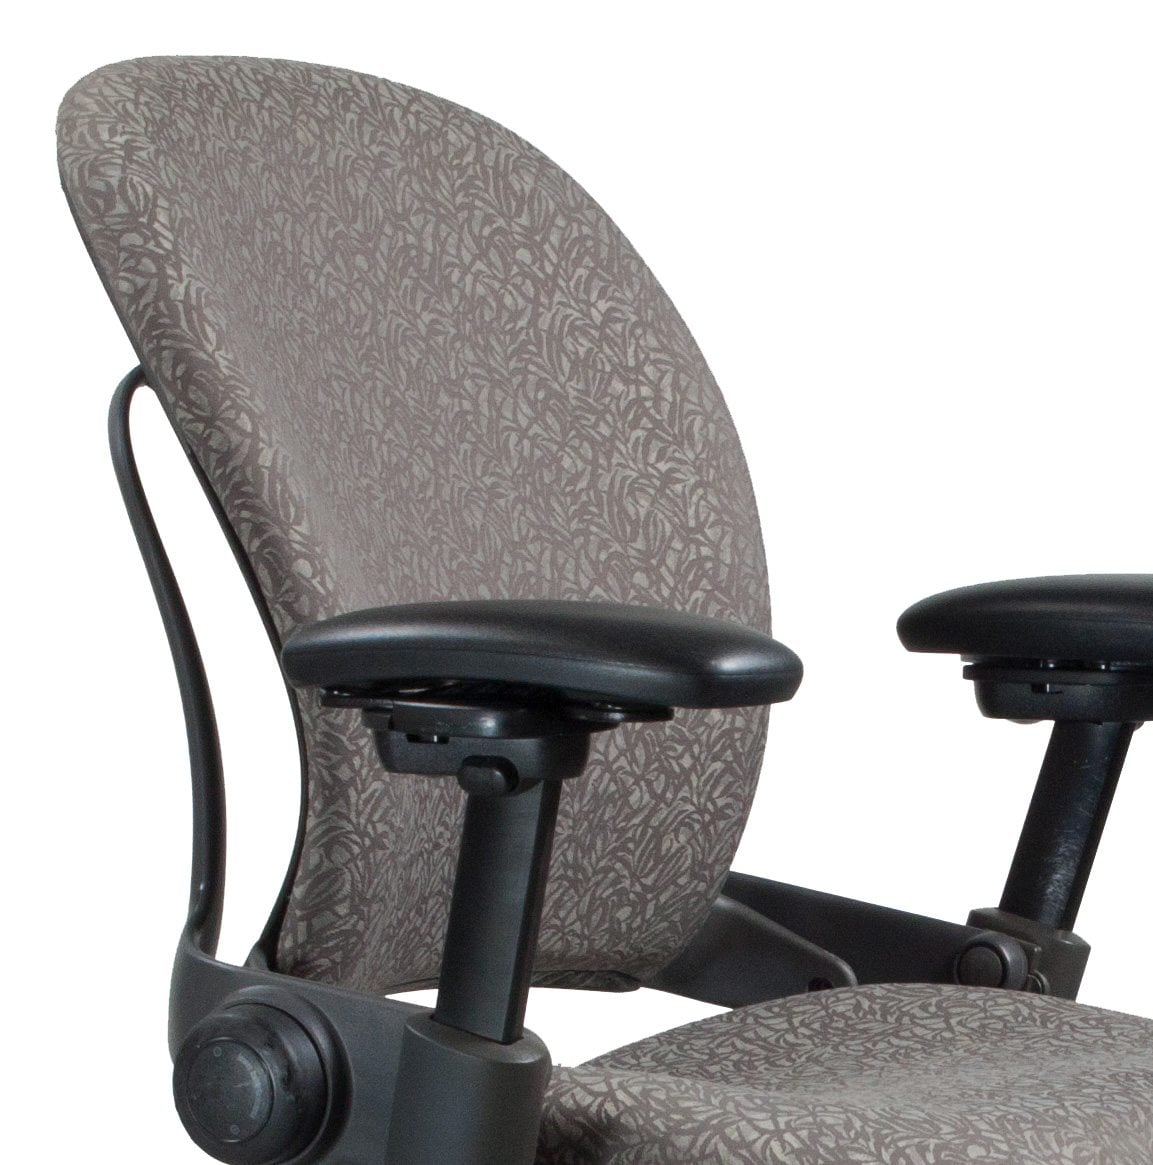 steelcase jersey chair review hanging swing leap used stool leaf national office